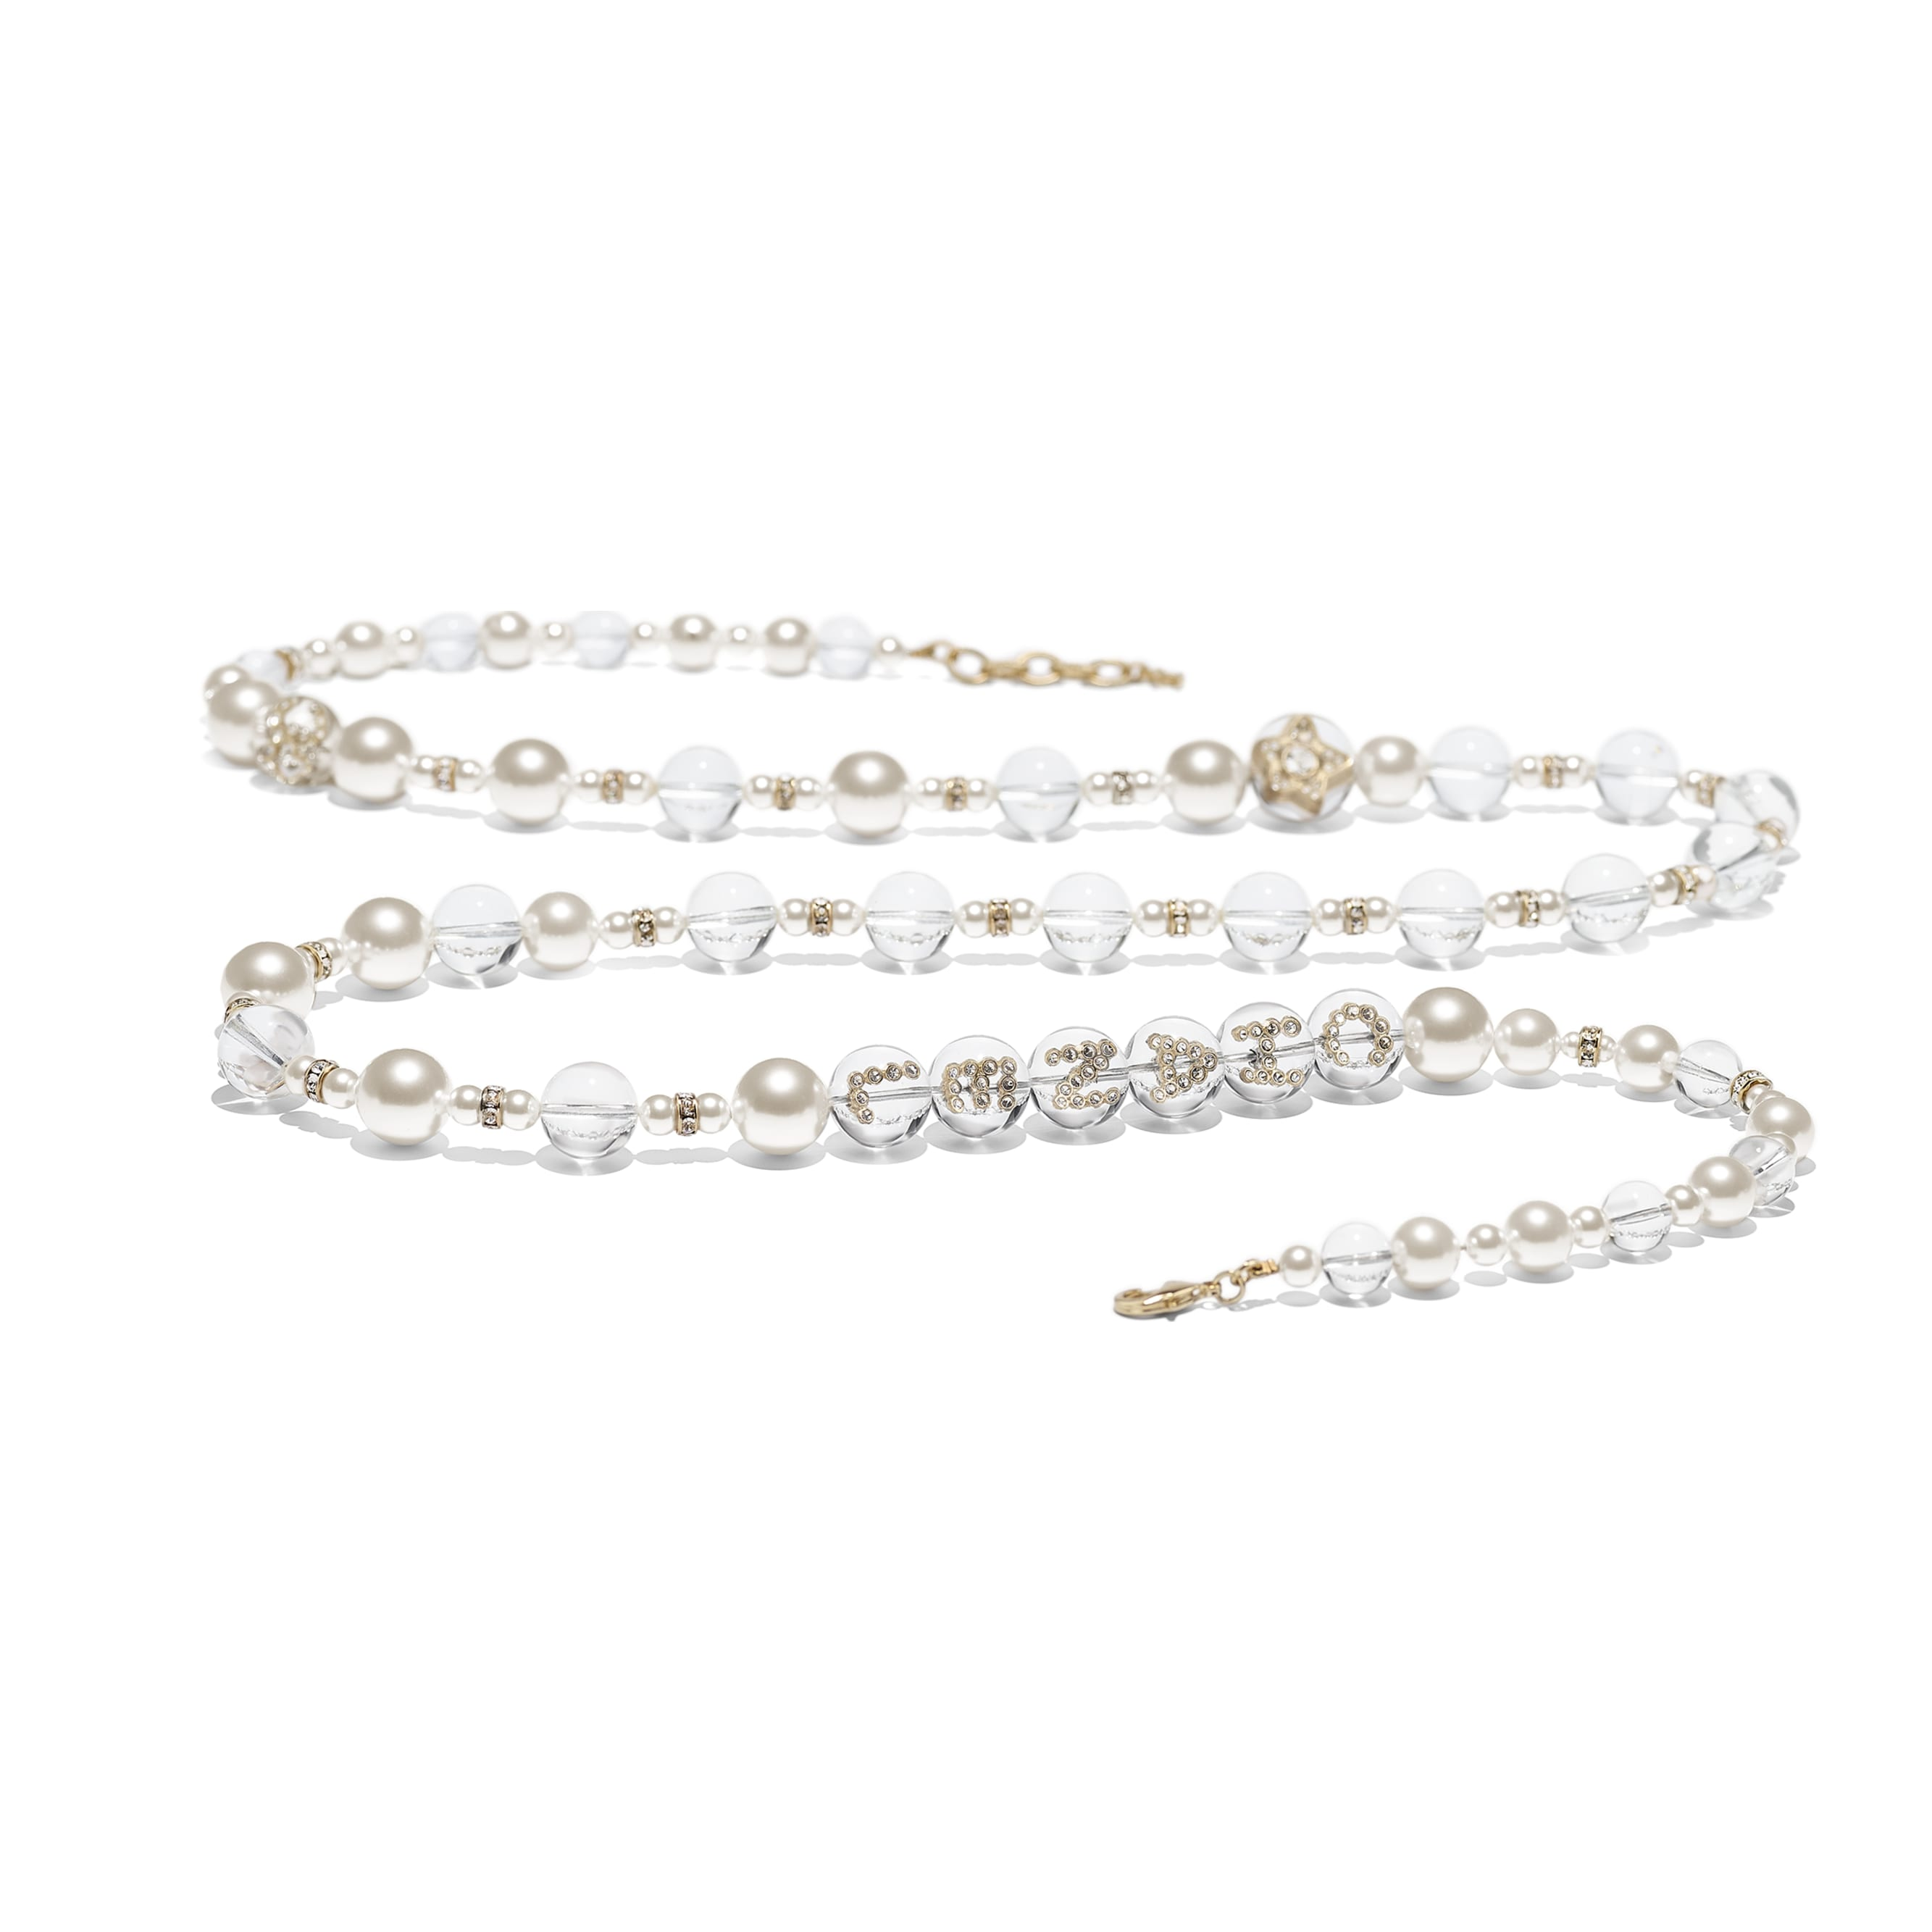 Long Necklace - Gold, Pearly White, Crystal & Transparent - Metal, Glass Pearls, Imitation Pearls & Diamanté - Alternative view - see standard sized version